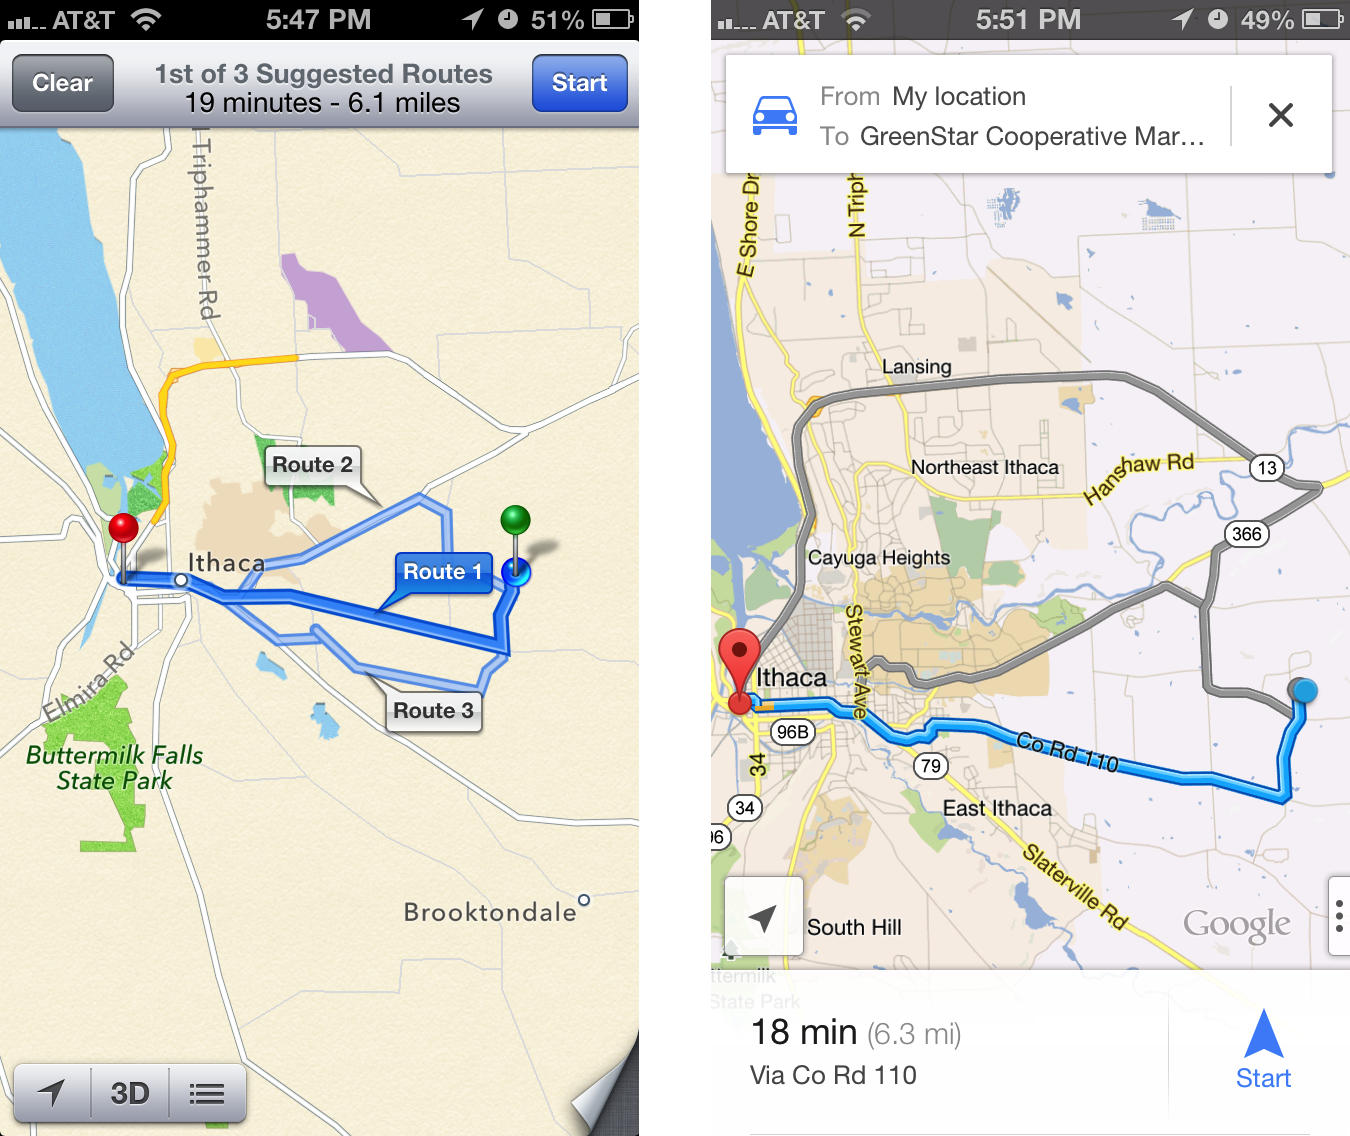 get voice directions on google maps with 13459 on Half Gigameter Of Biking Navigation In additionally Google Maps Voice Actions Bike Routes Android Quick Look moreover All Over The Country 2 as well Google Search For Ios Updated With Material Design App Maps More 0159031 together with Details.